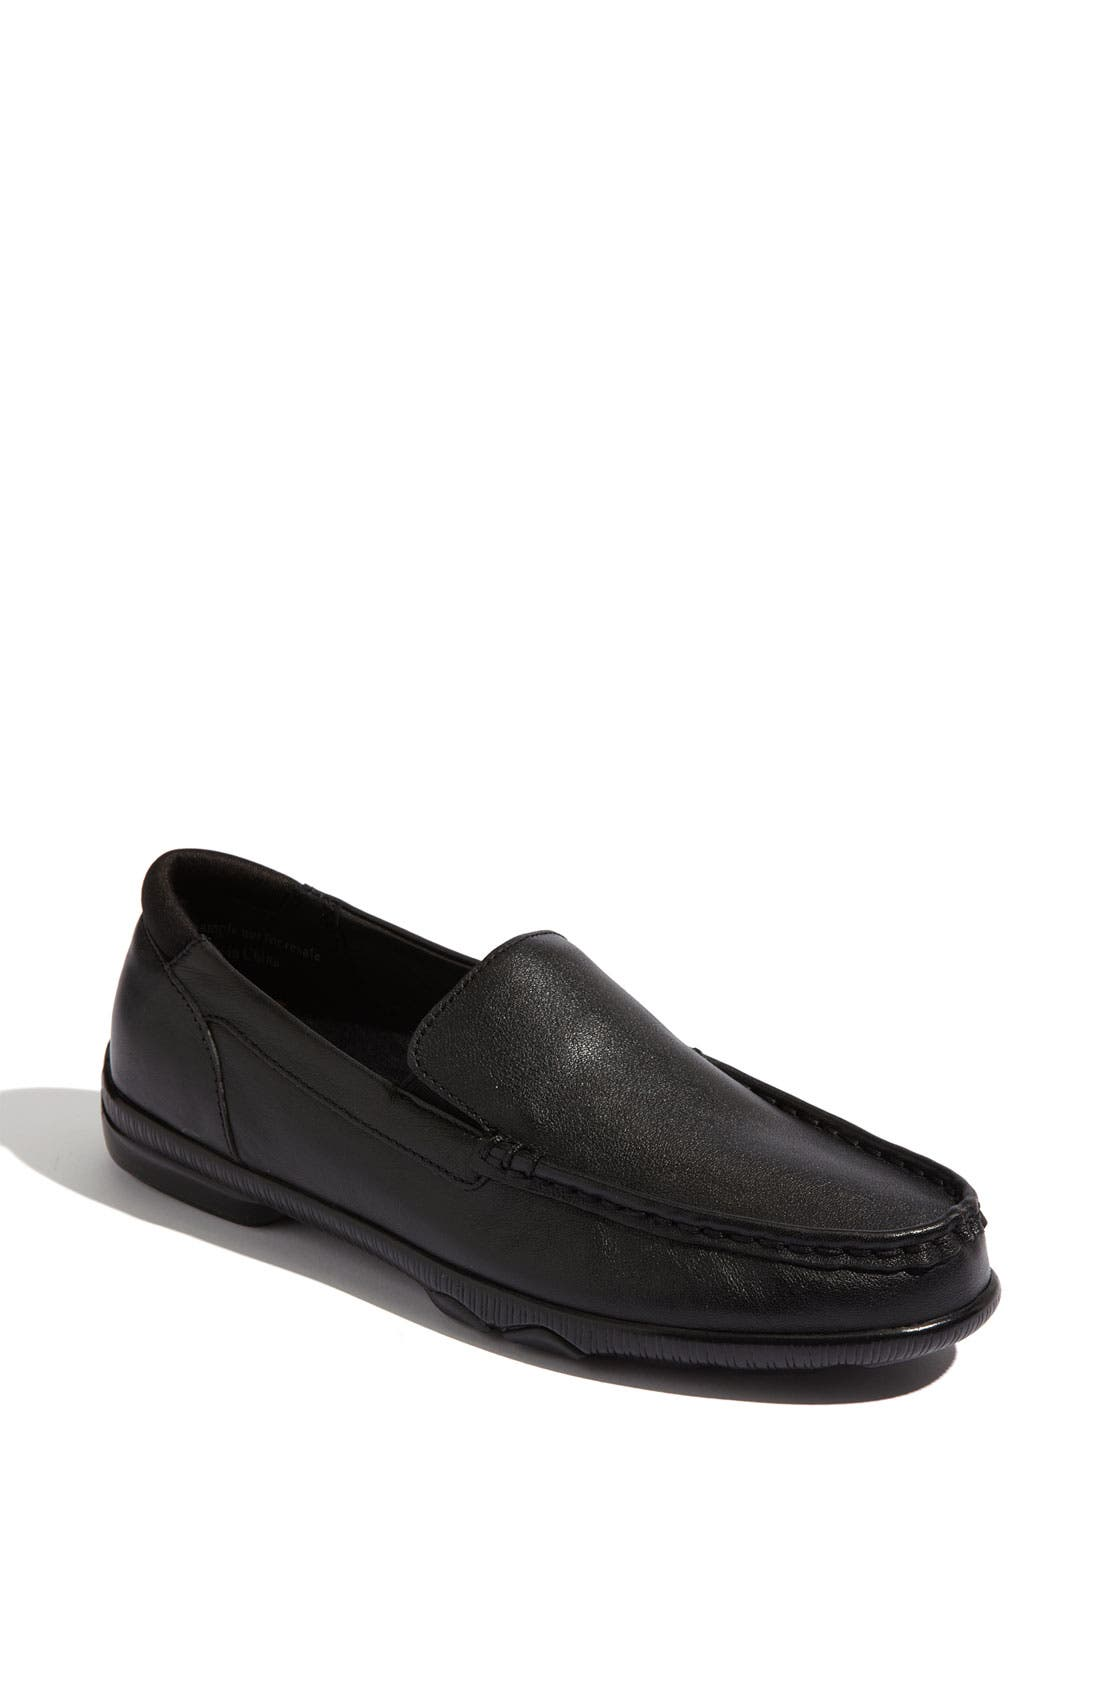 Alternate Image 1 Selected - Aetrex 'Kimberly Essence' Loafer